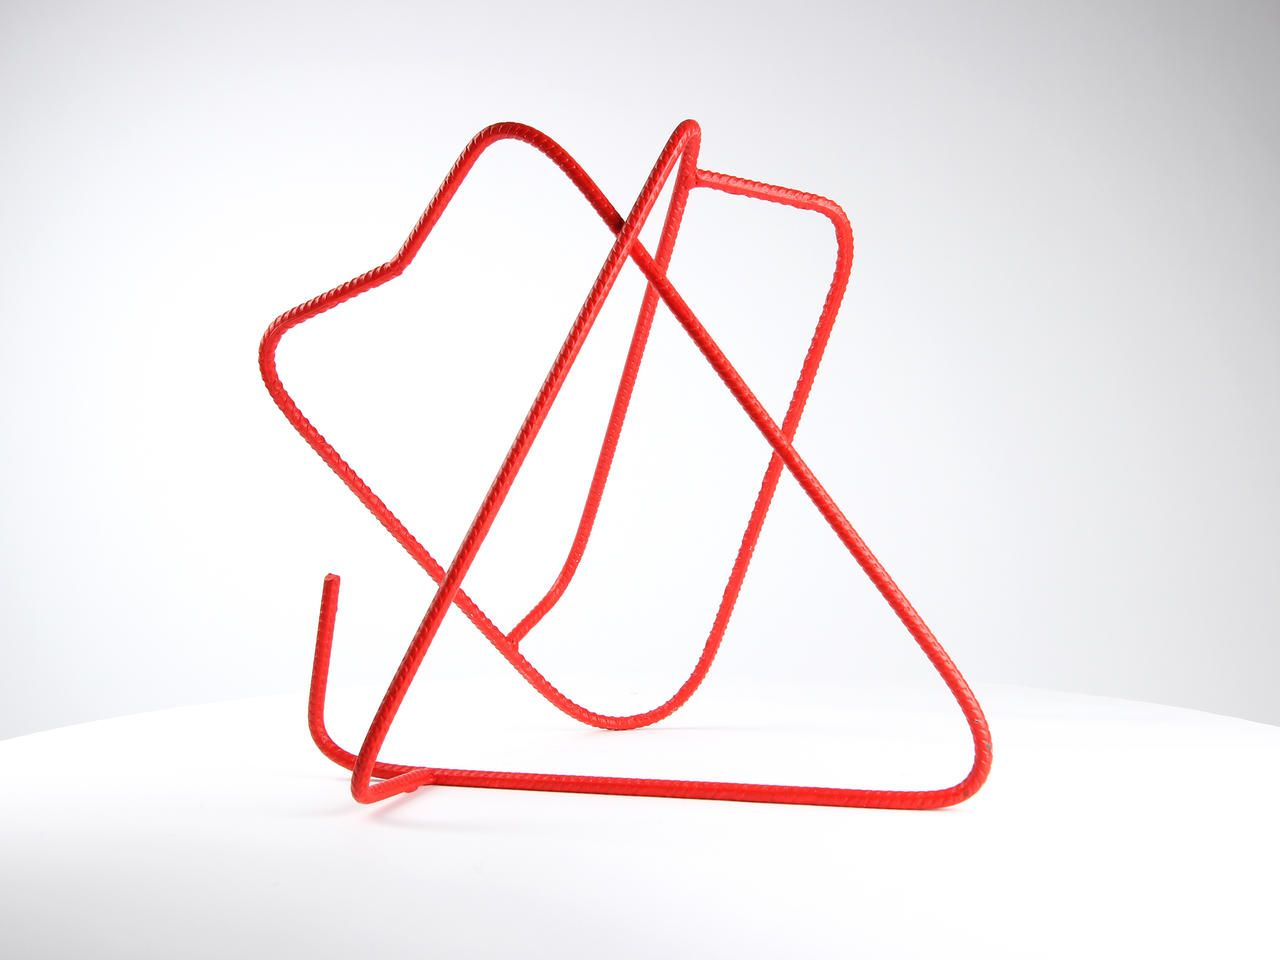 Tri-angle,Delphine Brabant,Sculpture contemporaine